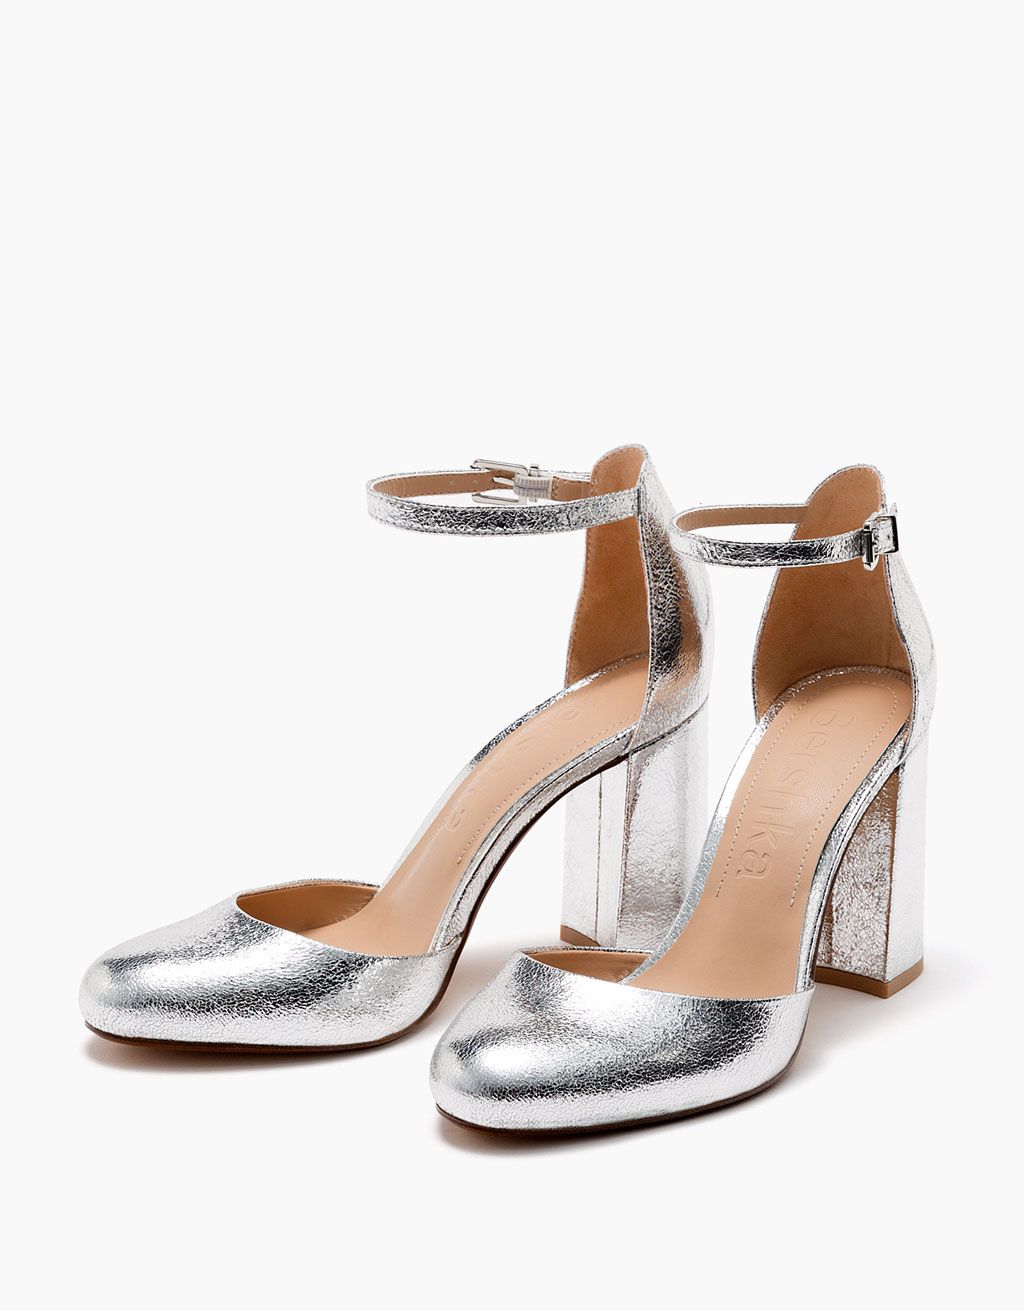 Metallic pump met brede hak